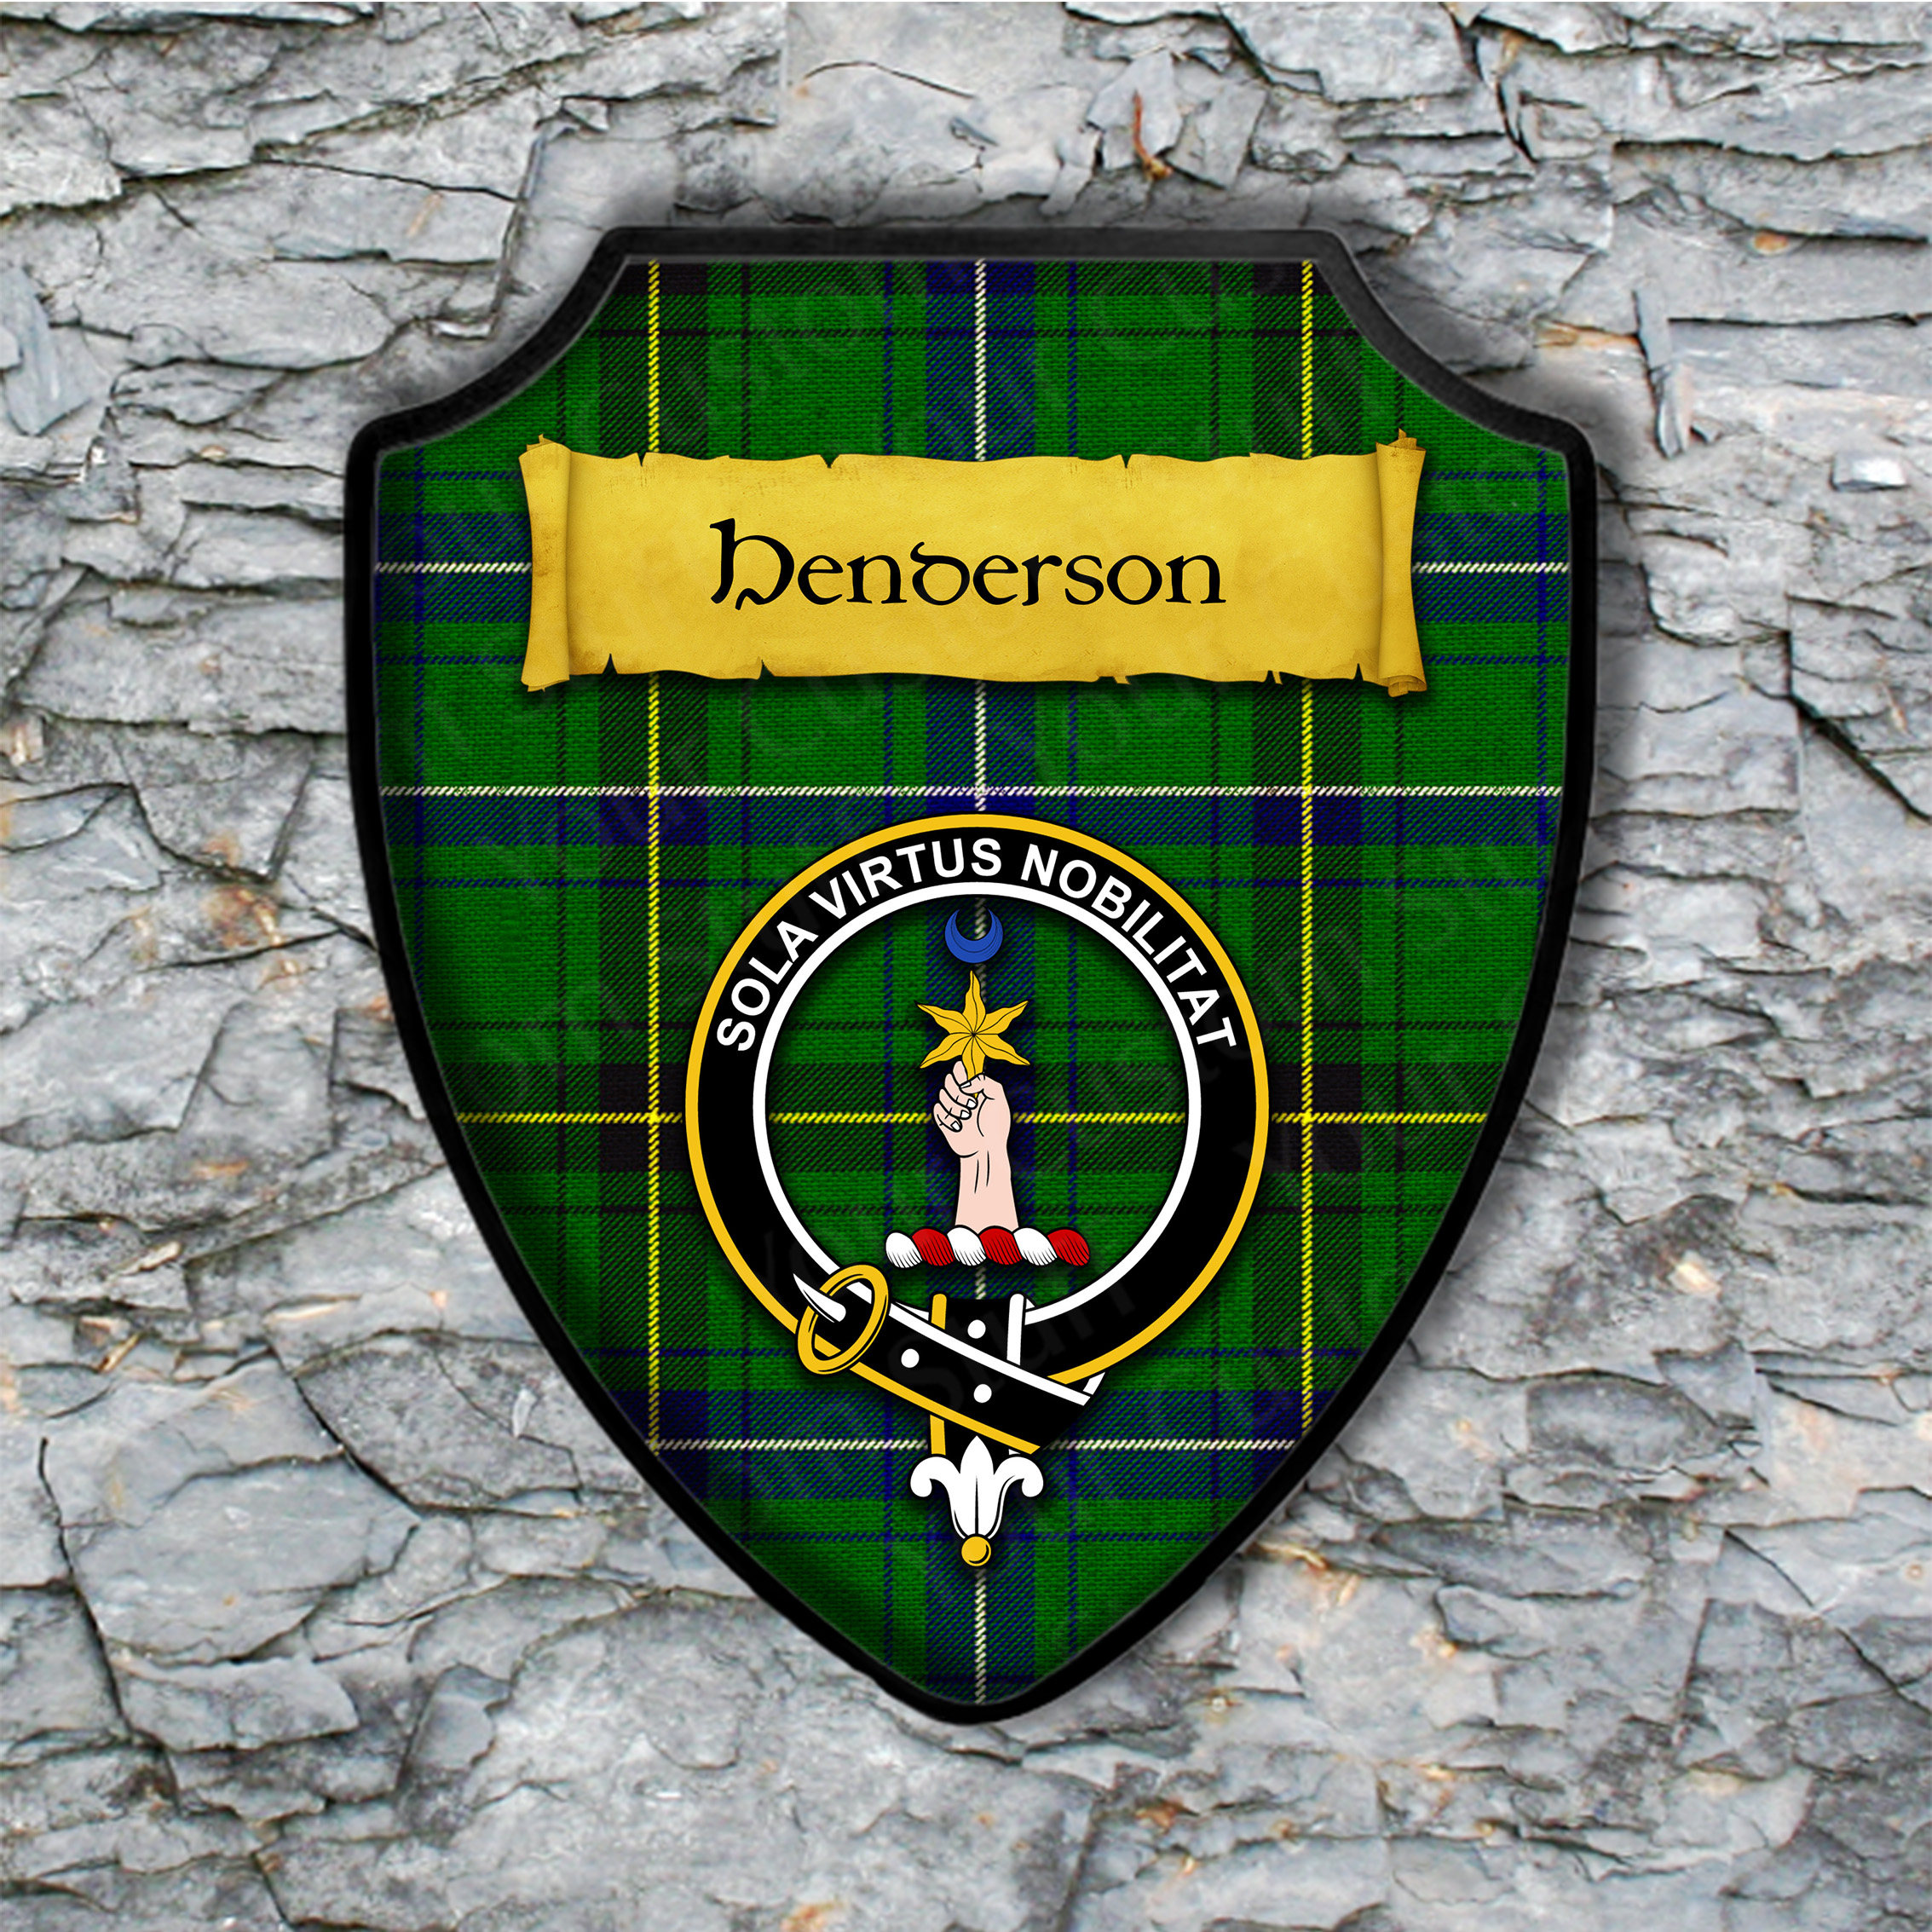 Henderson Shield Plaque with Scottish Clan Coat of Arms Badge on Clan Plaid Tartan Background Wall Art